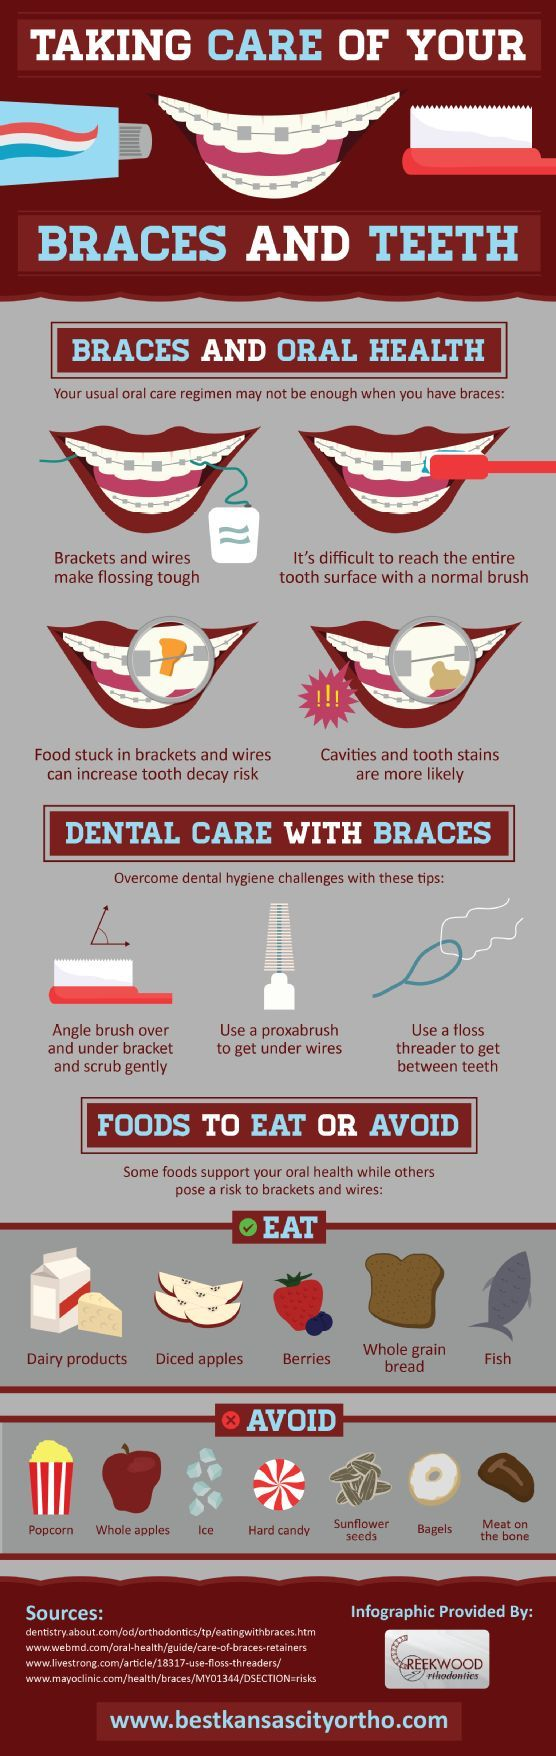 Do you have braces? Check out this infographic to learn how to care for your braces and your teeth!